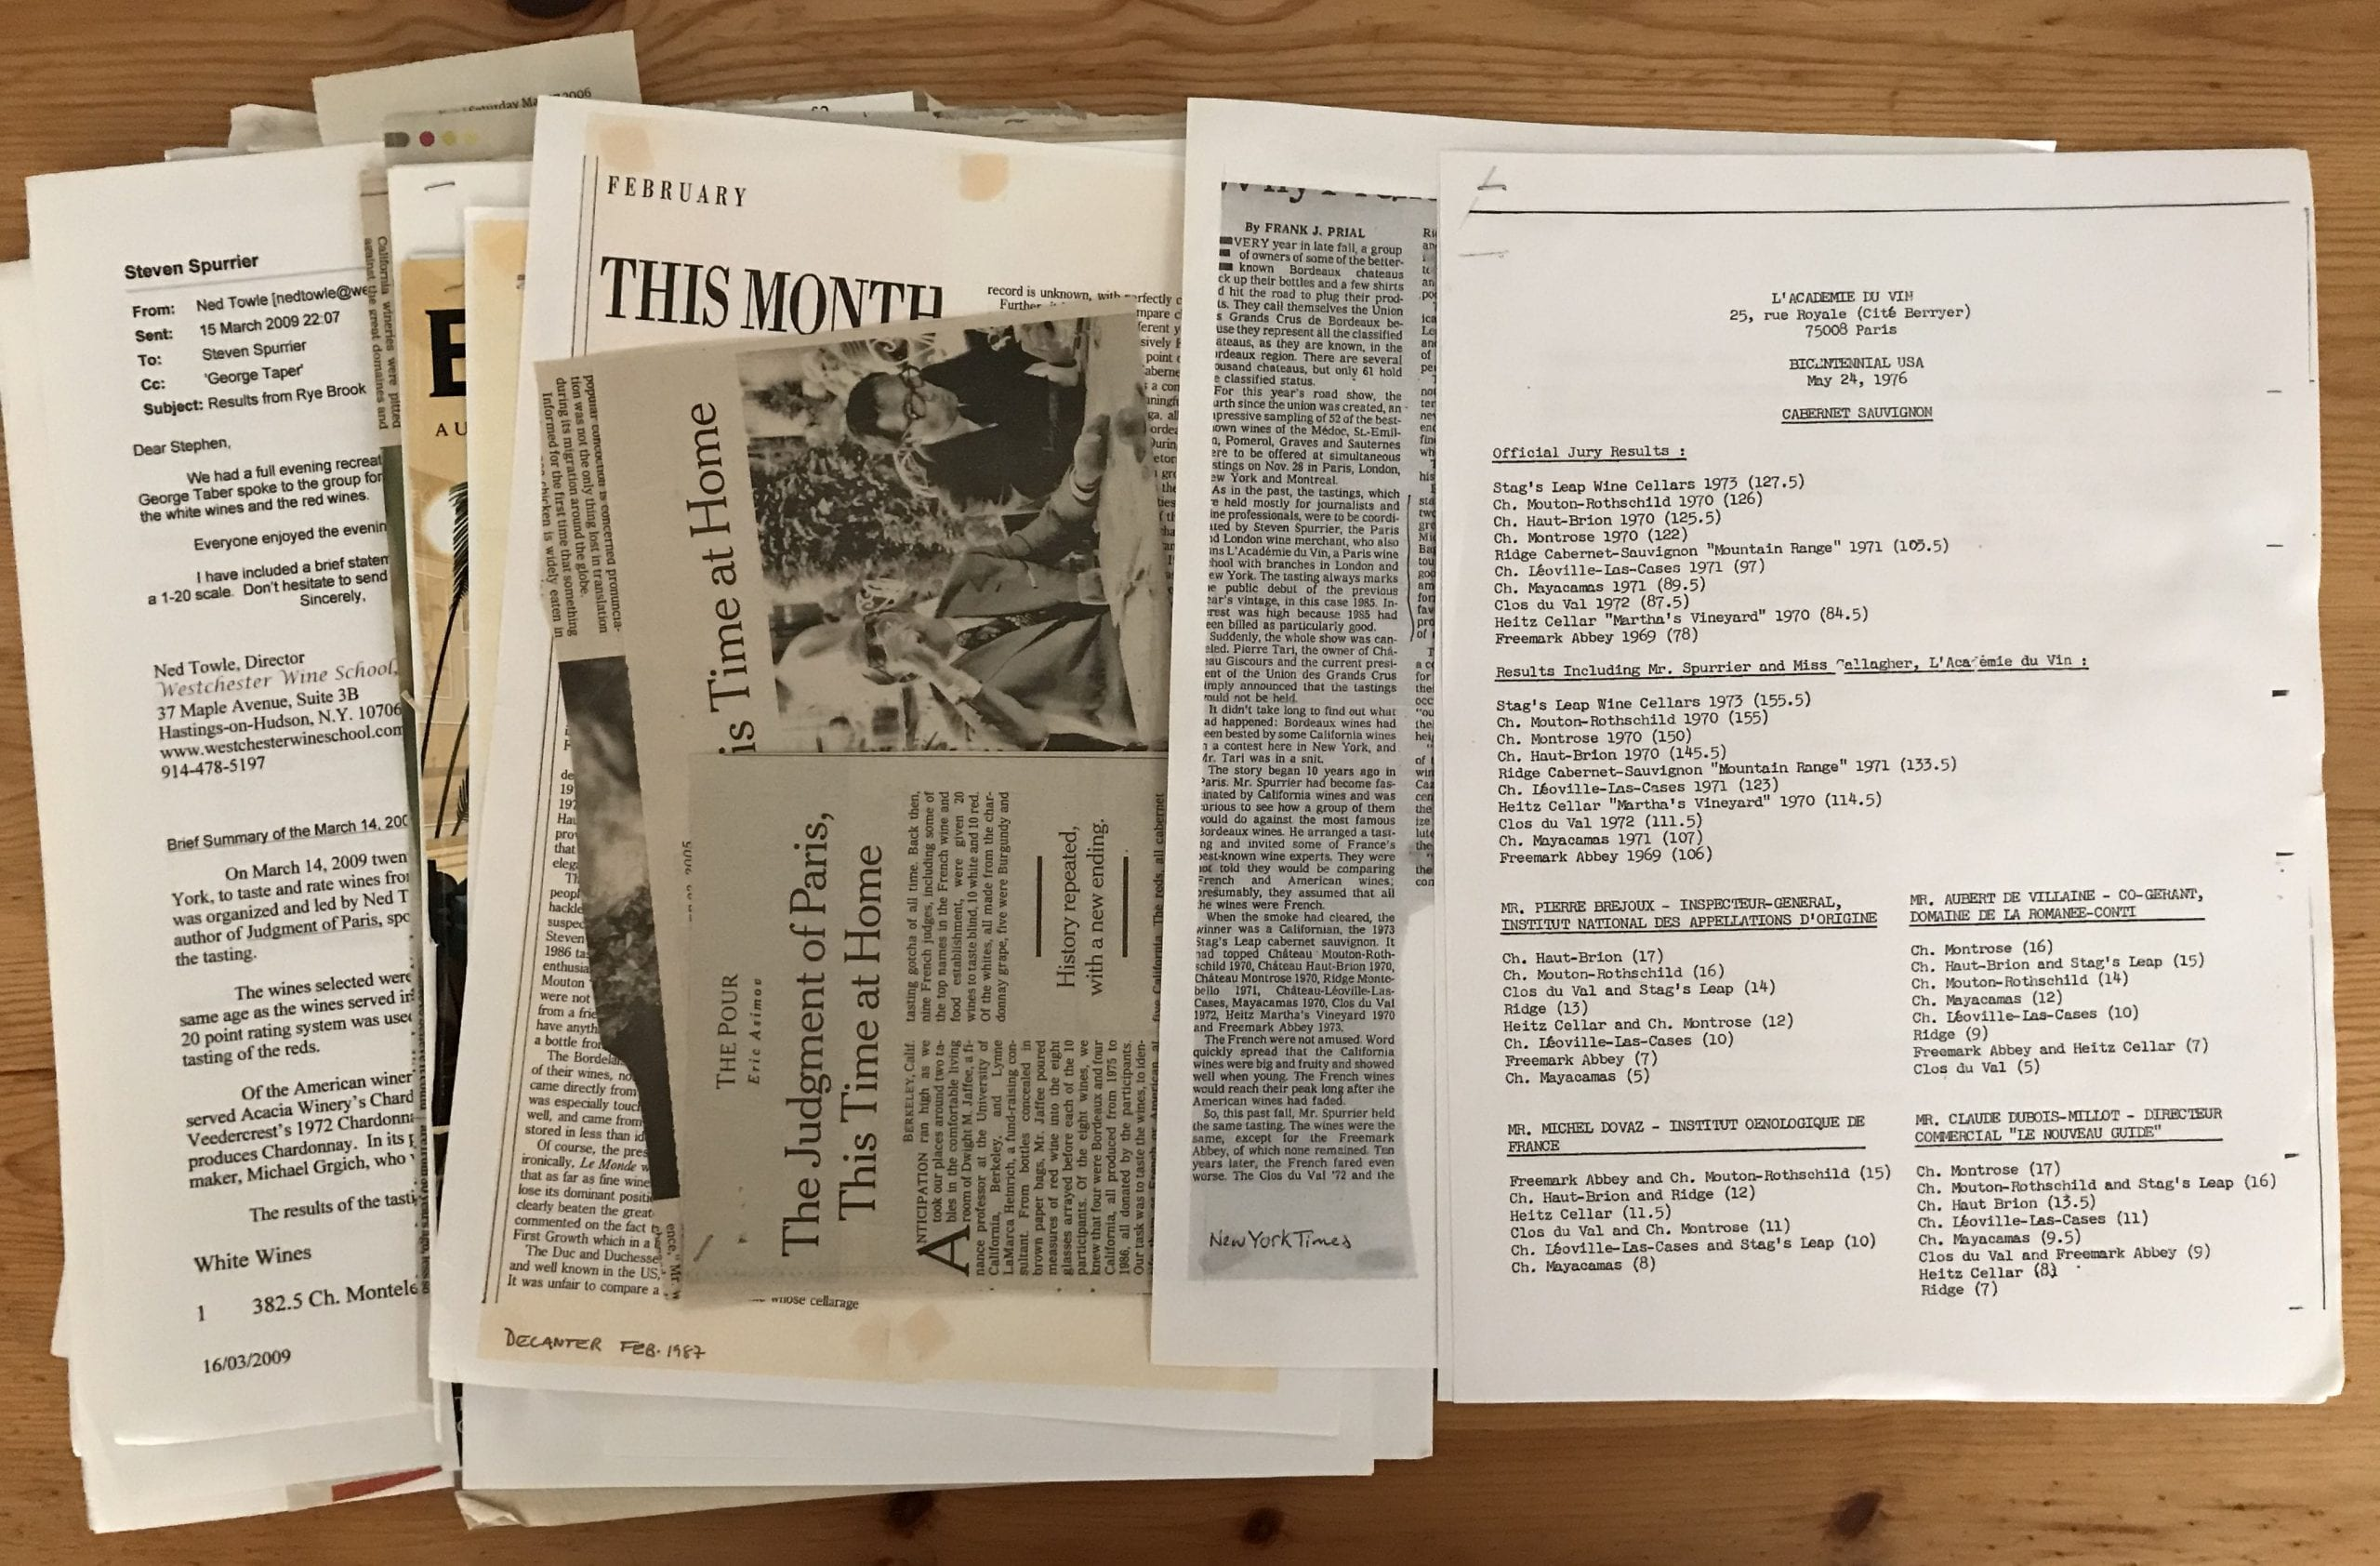 Papers from Steven Spurrier collection